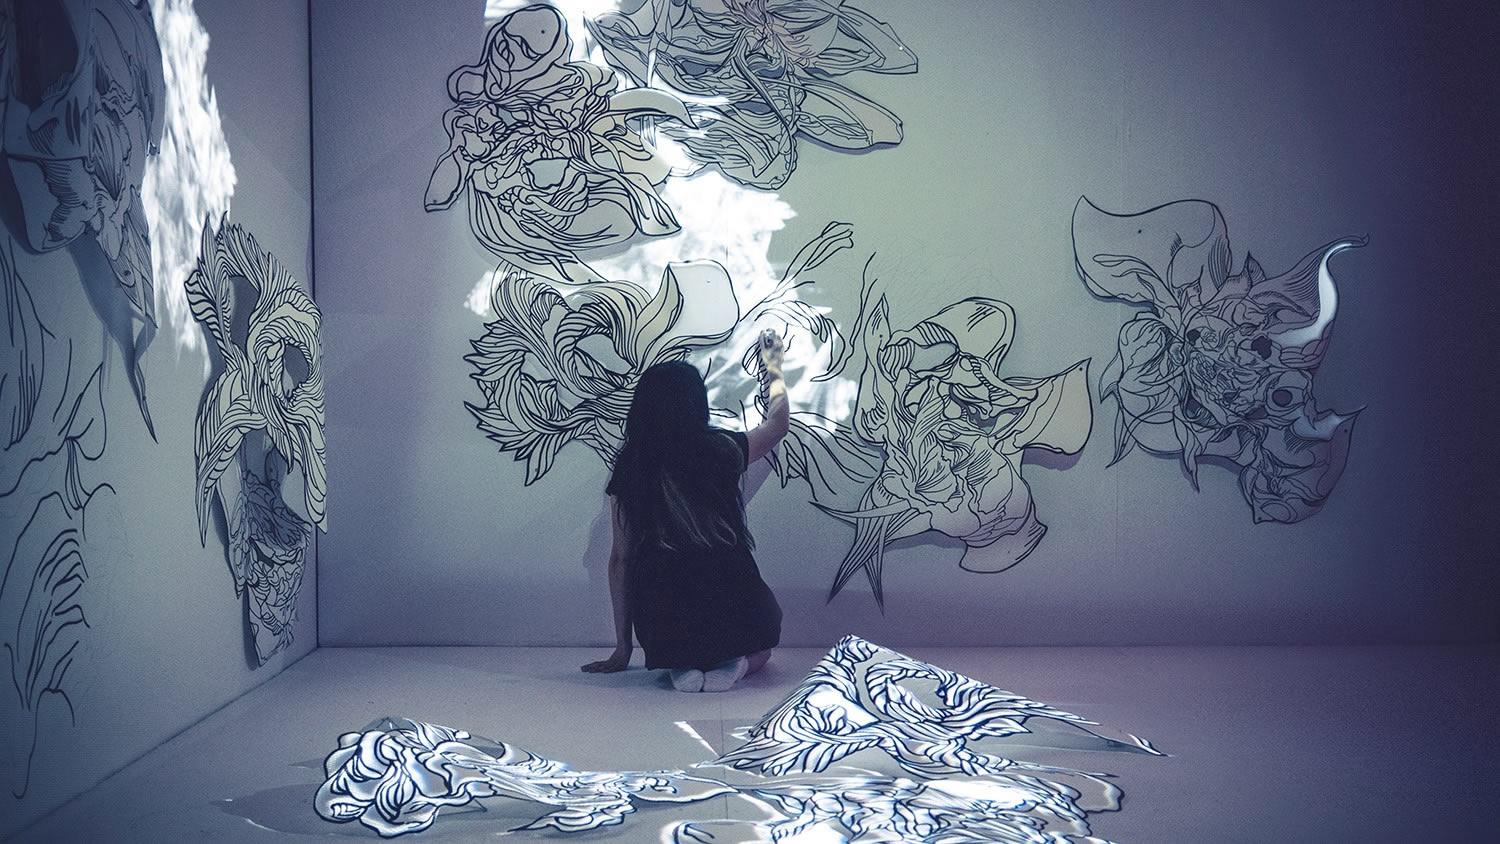 artist Sougwen Chung drawing on a wall